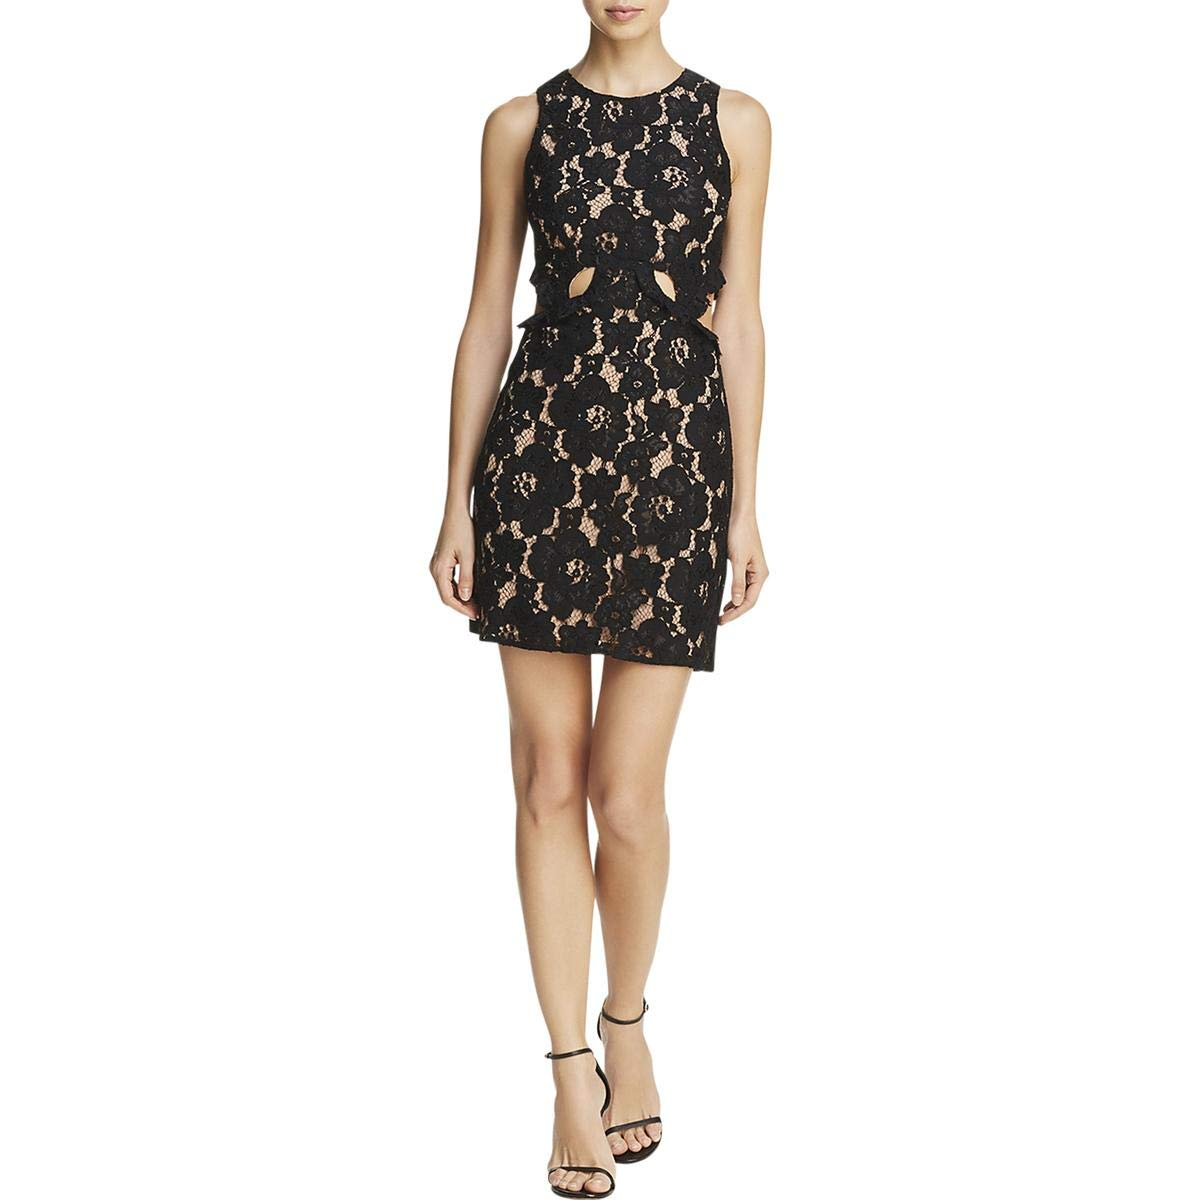 Black WAYF Womens Lace Overlay Cutout Party Dress